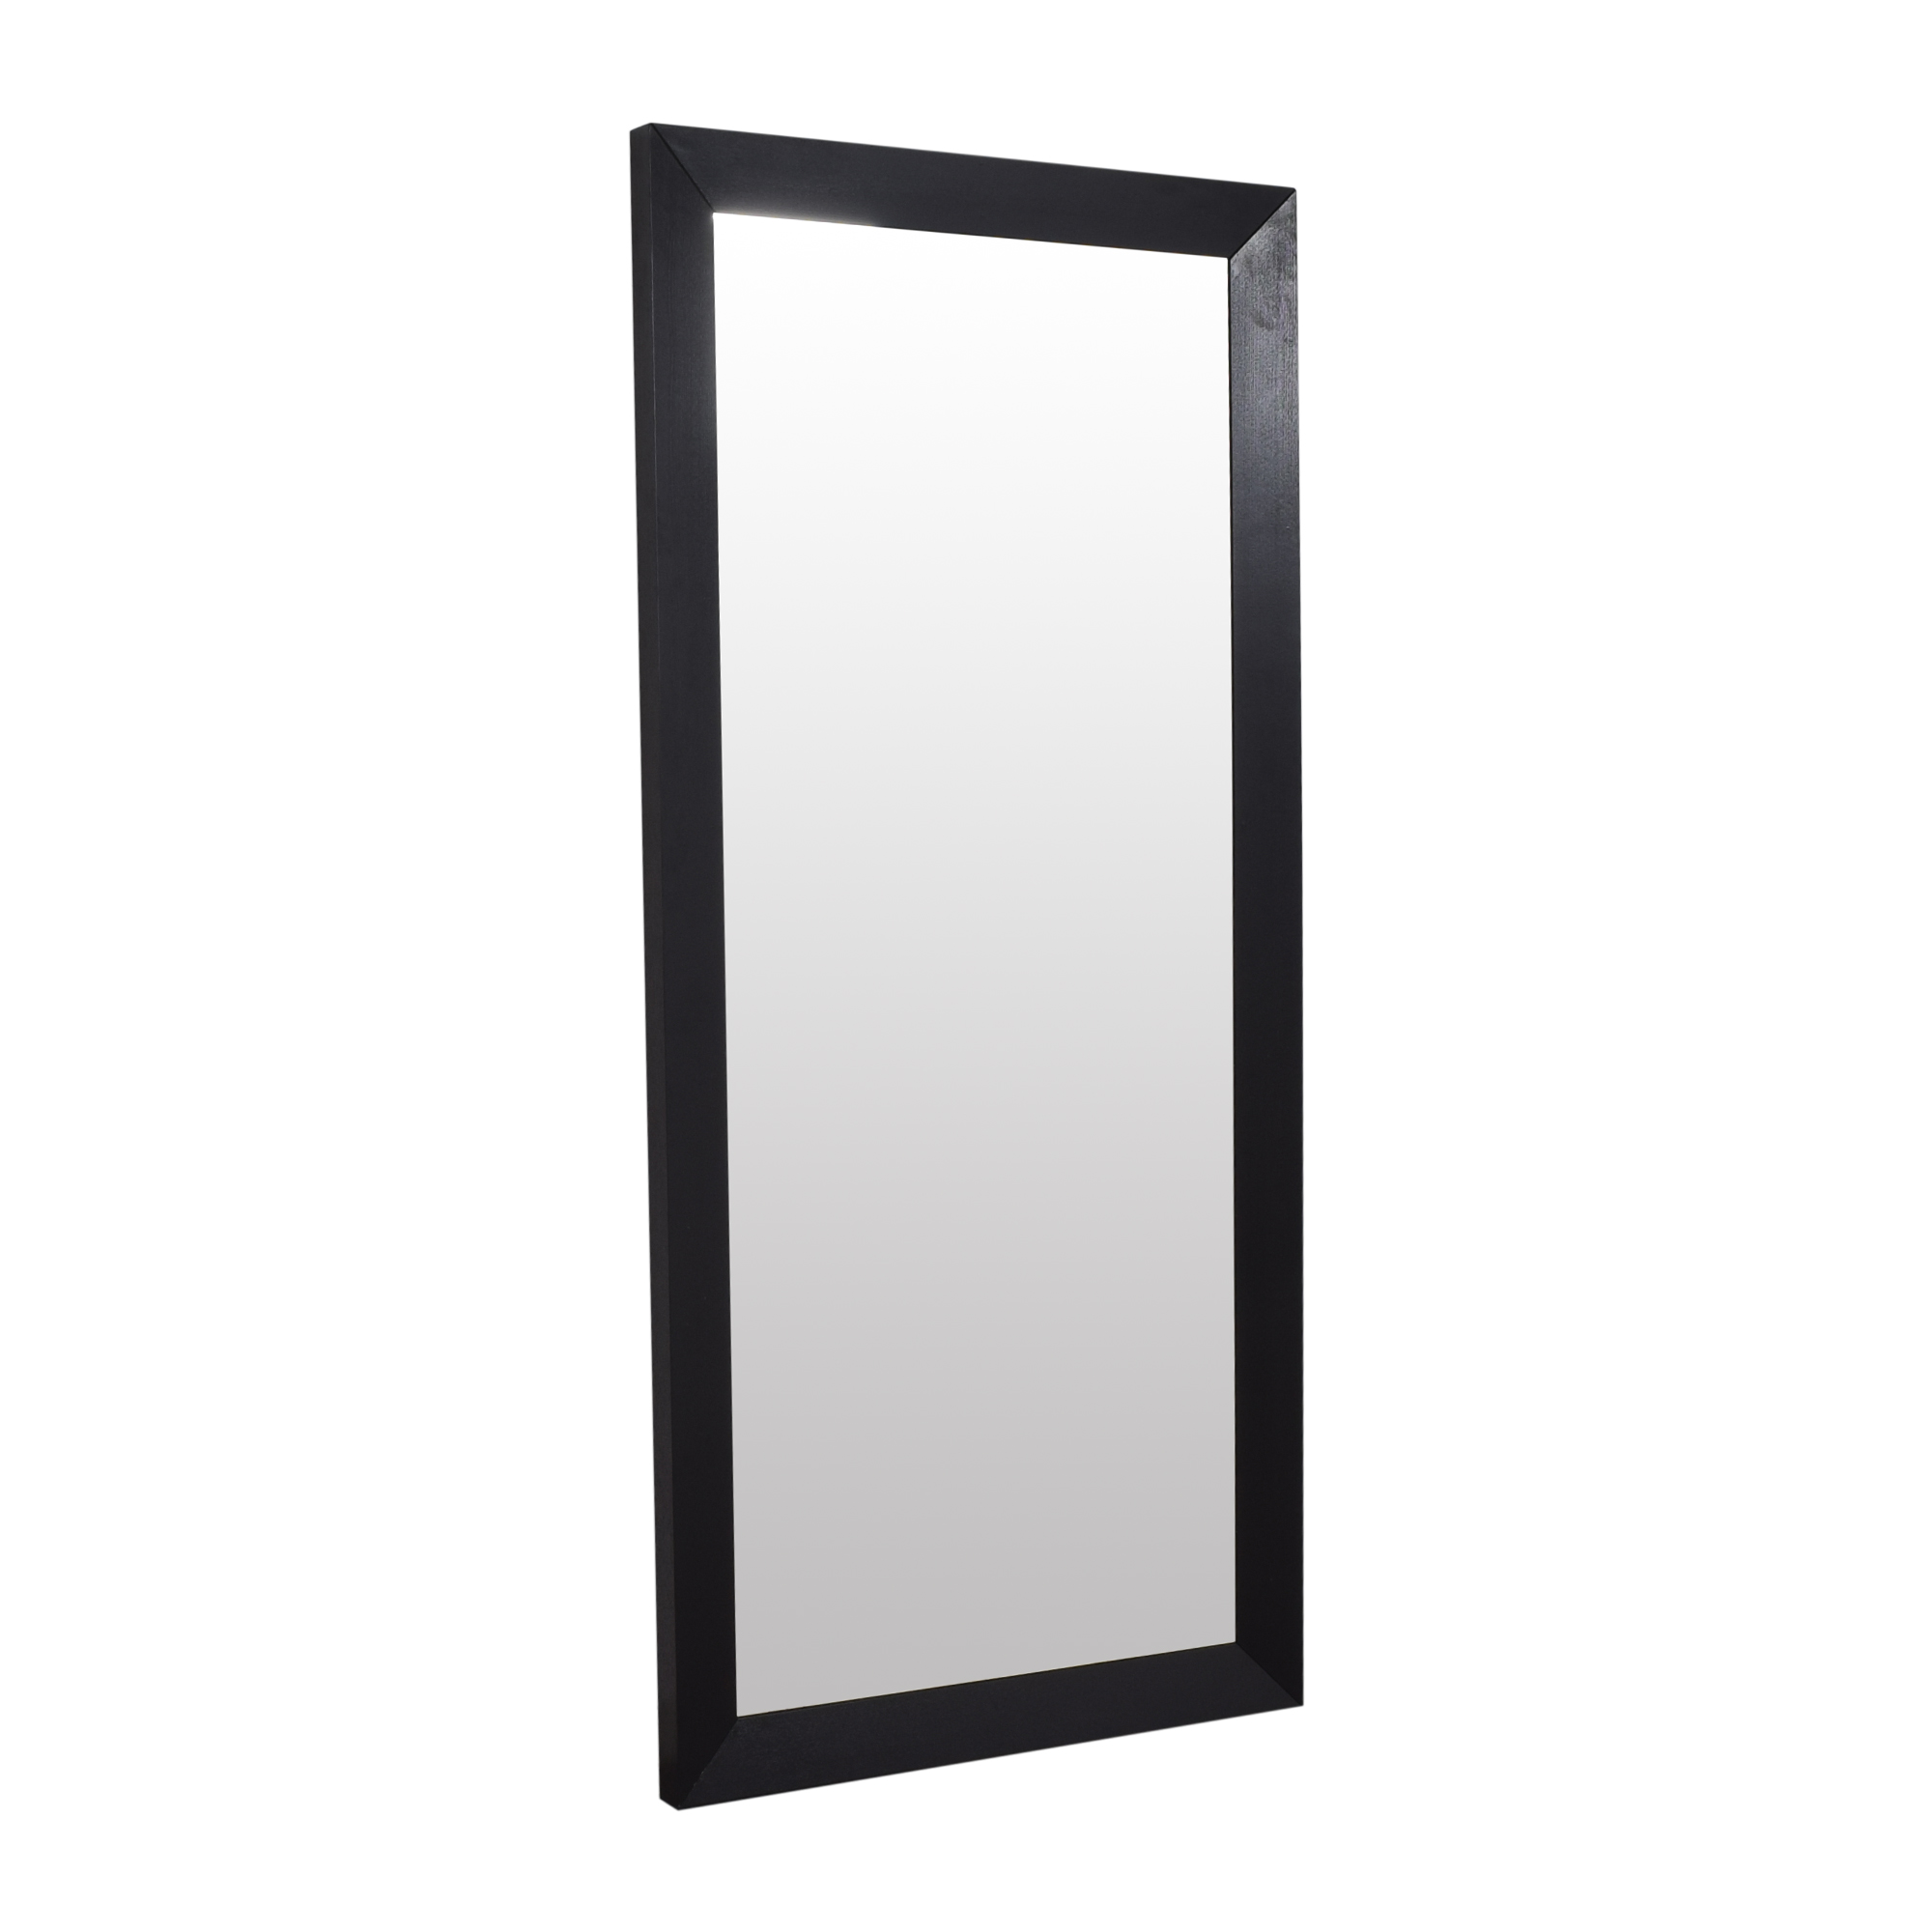 buy Mitchell Gold + Bob Williams Mitchell Gold + Bob Williams Viewmont Floor Mirror online